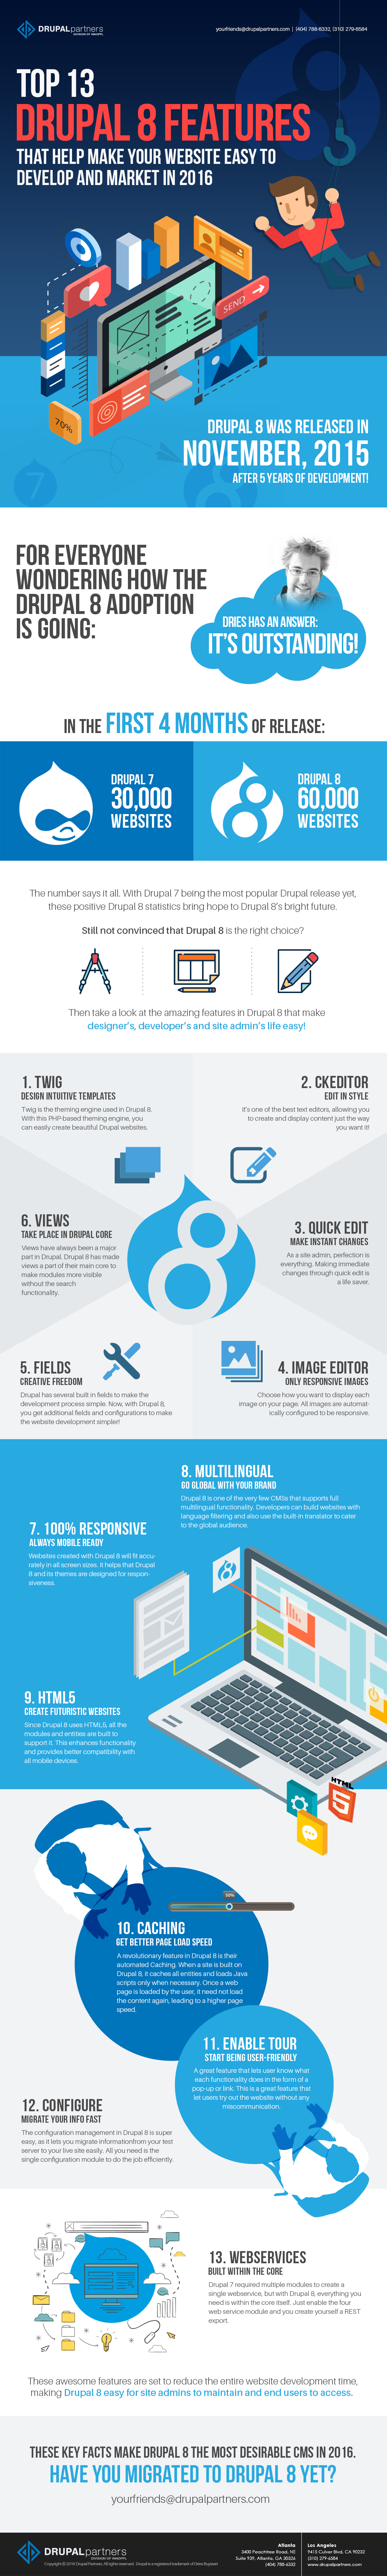 Top 13 Drupal 8 Features for Developing and Marketing